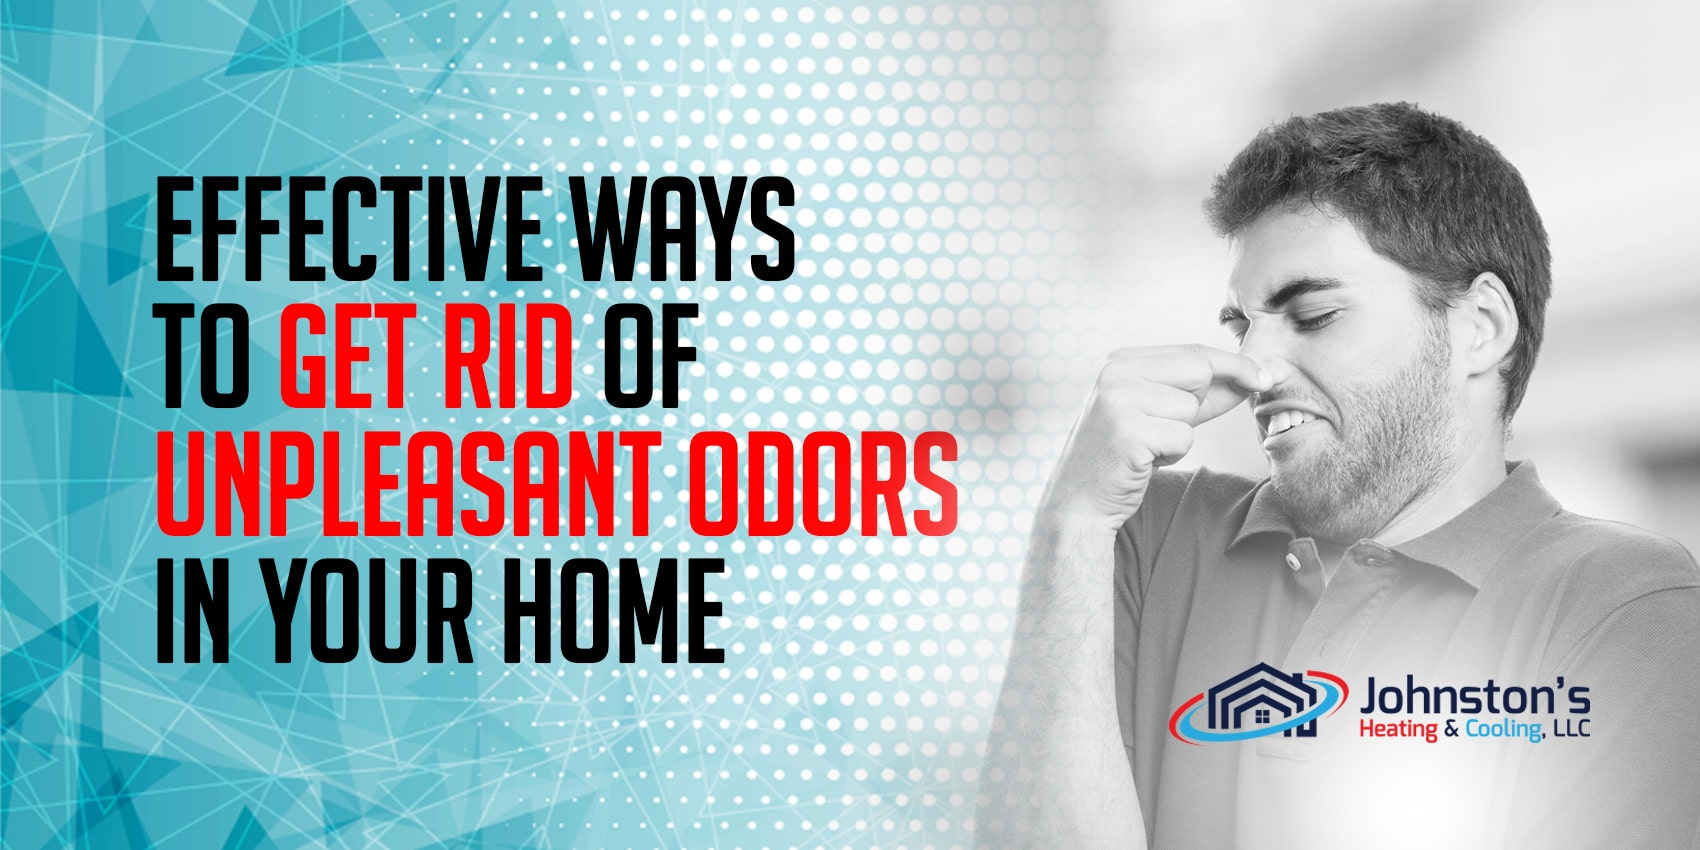 Effective Ways to Get Rid of Unpleasant Odors in Your Home